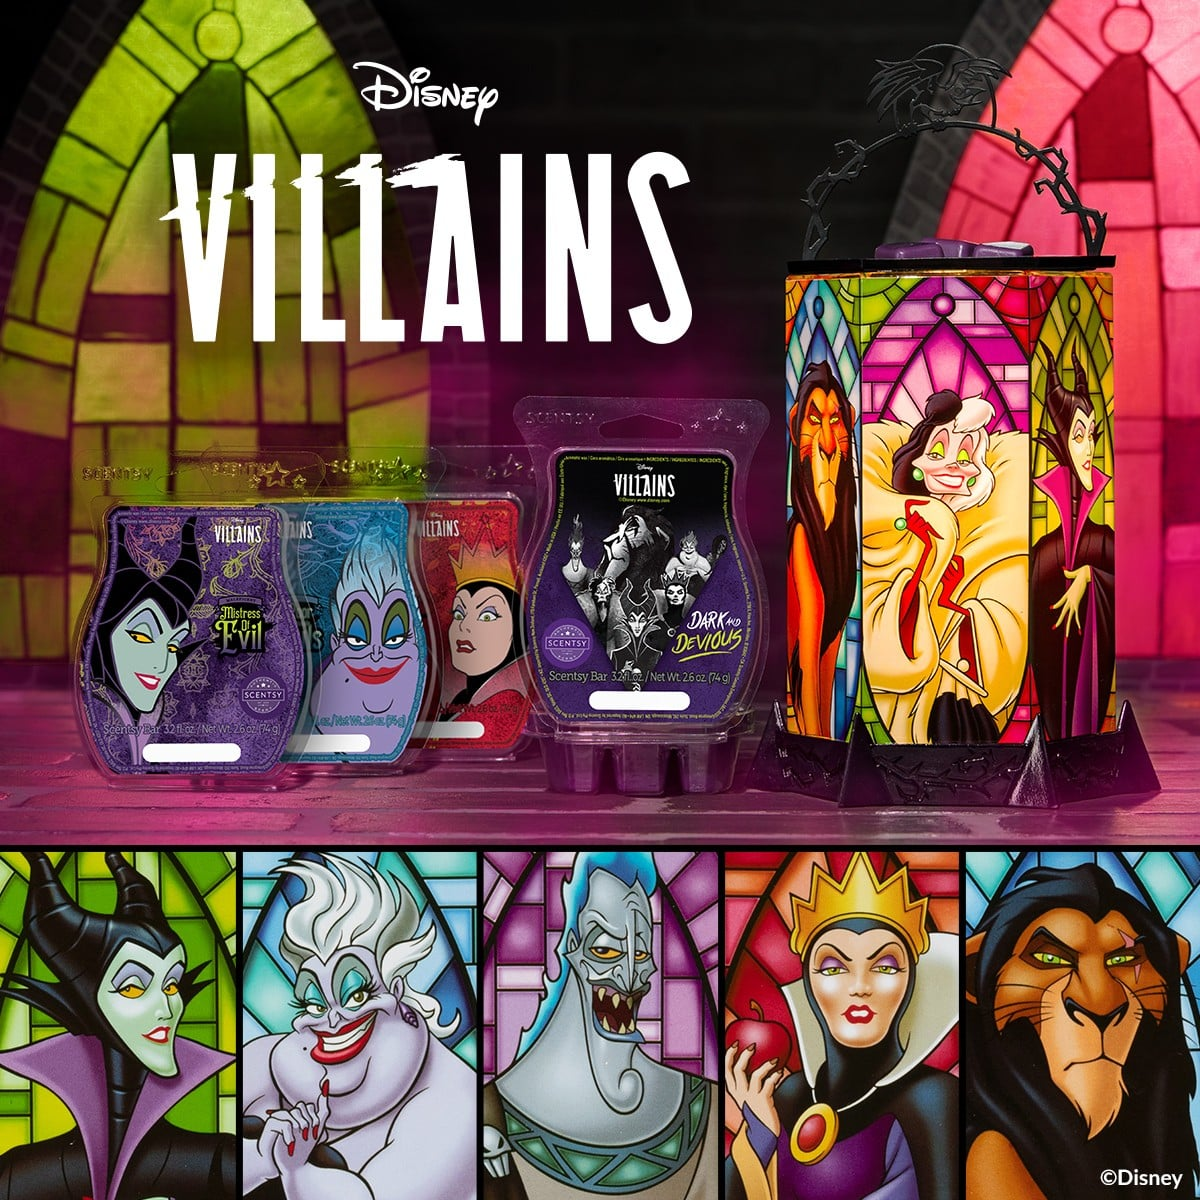 NEW! Scentsy – Disney Villains Collection  | Villains All The Rage Scentsy Warmer & Scents | Fall 2021